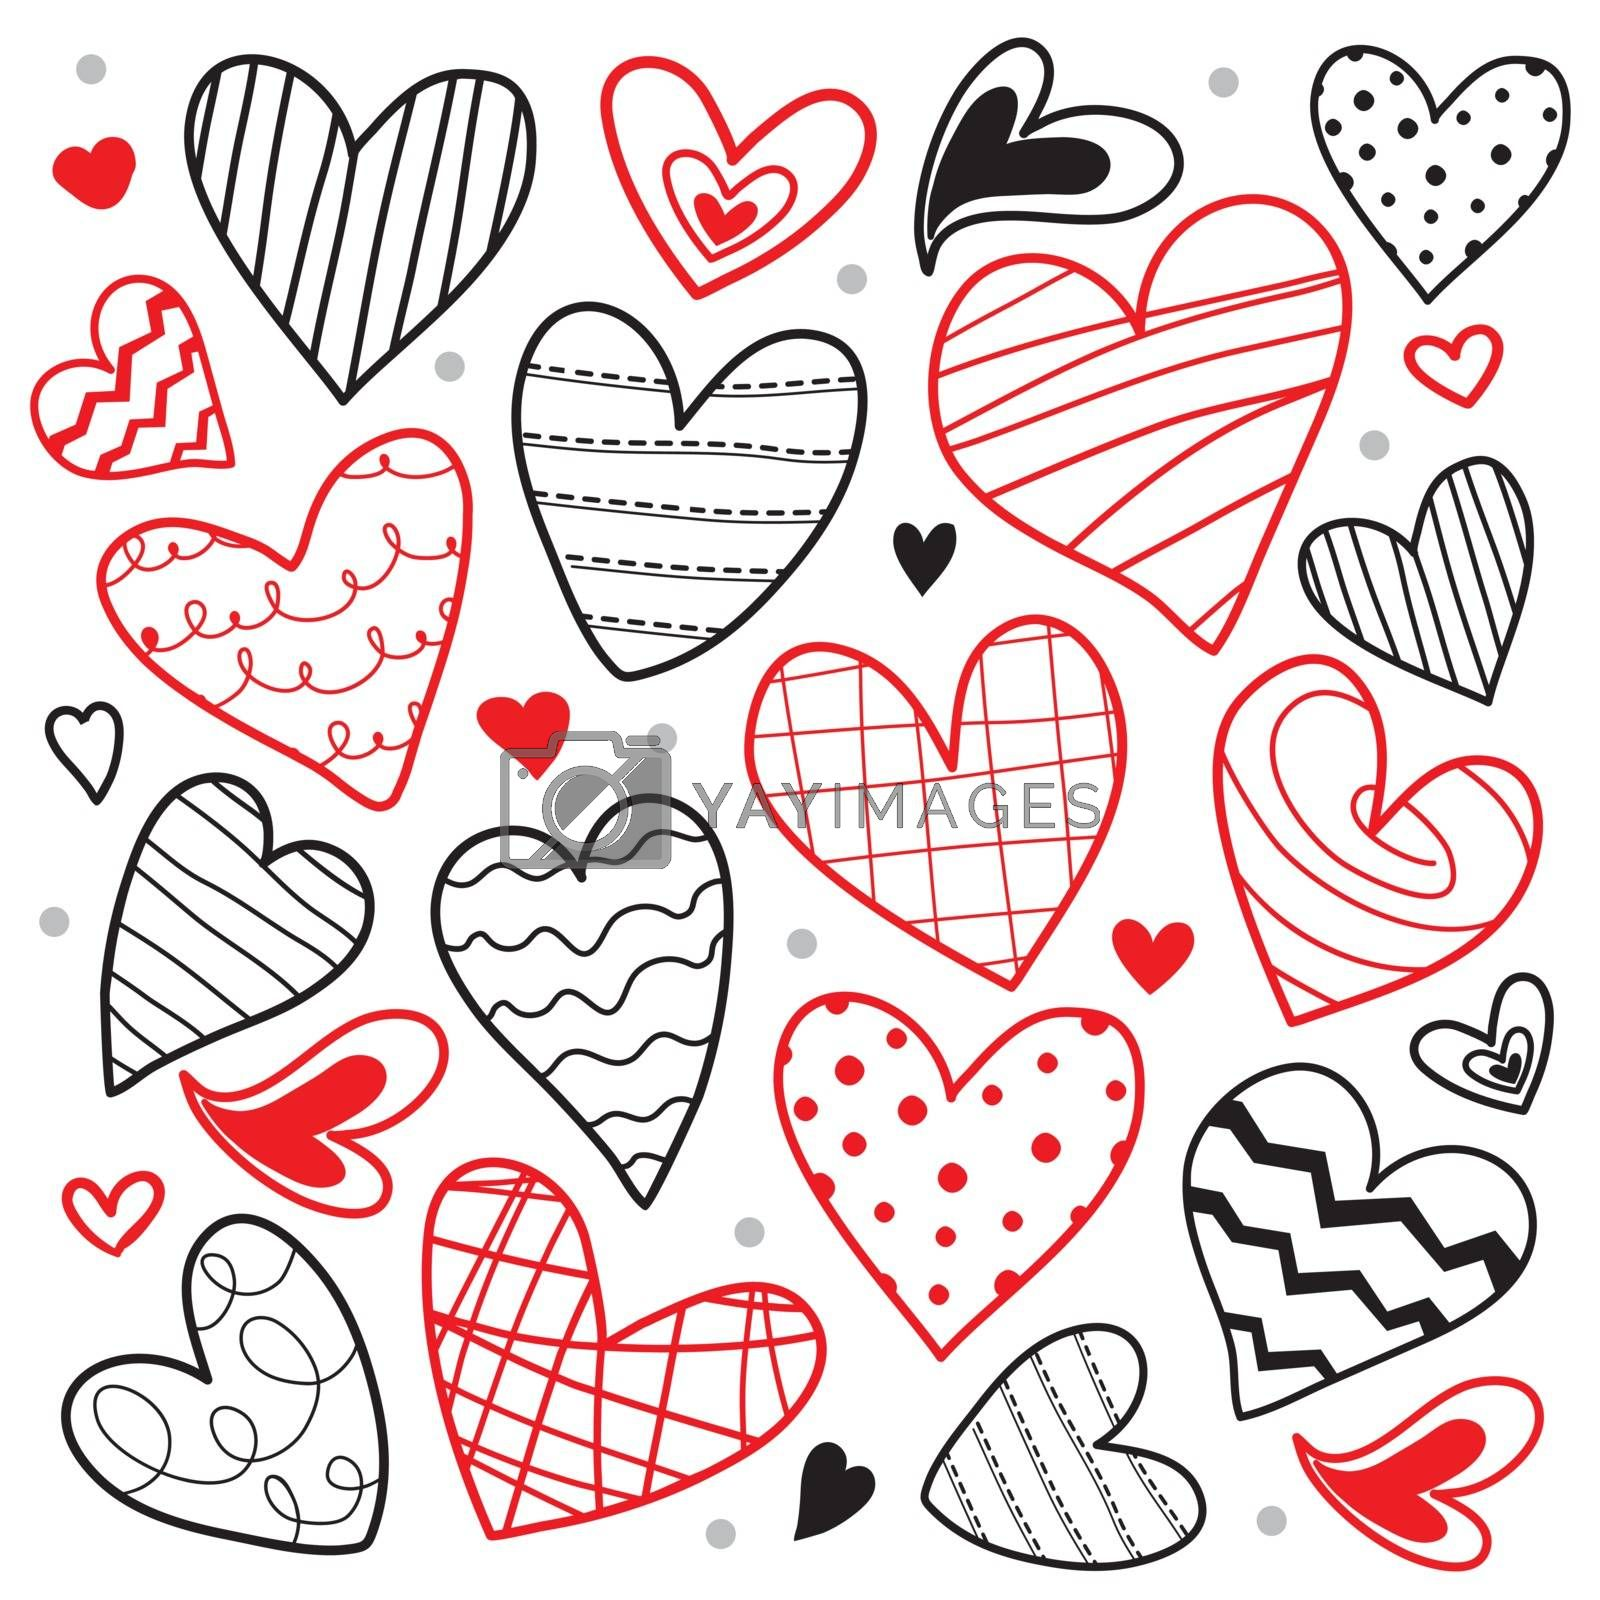 Royalty free image of Collection of Draw Heart Love element icon and symbol vector by Ienjoyeverytime